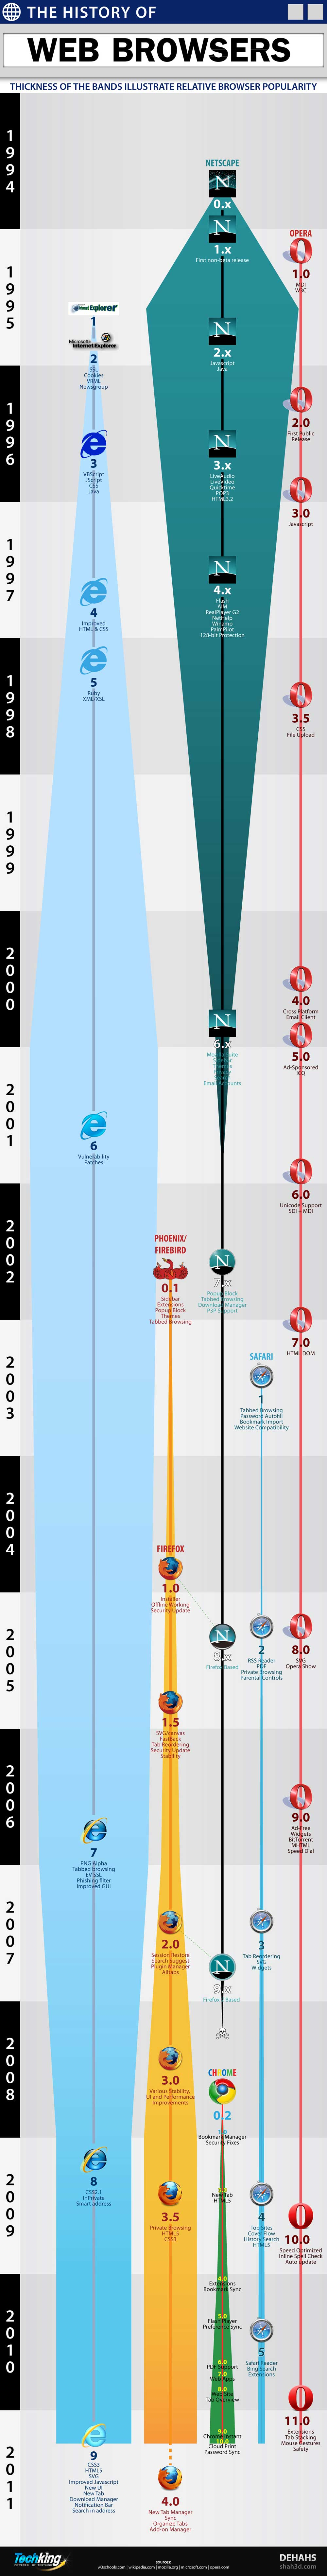 The History Of Web Browsers [Infographic]